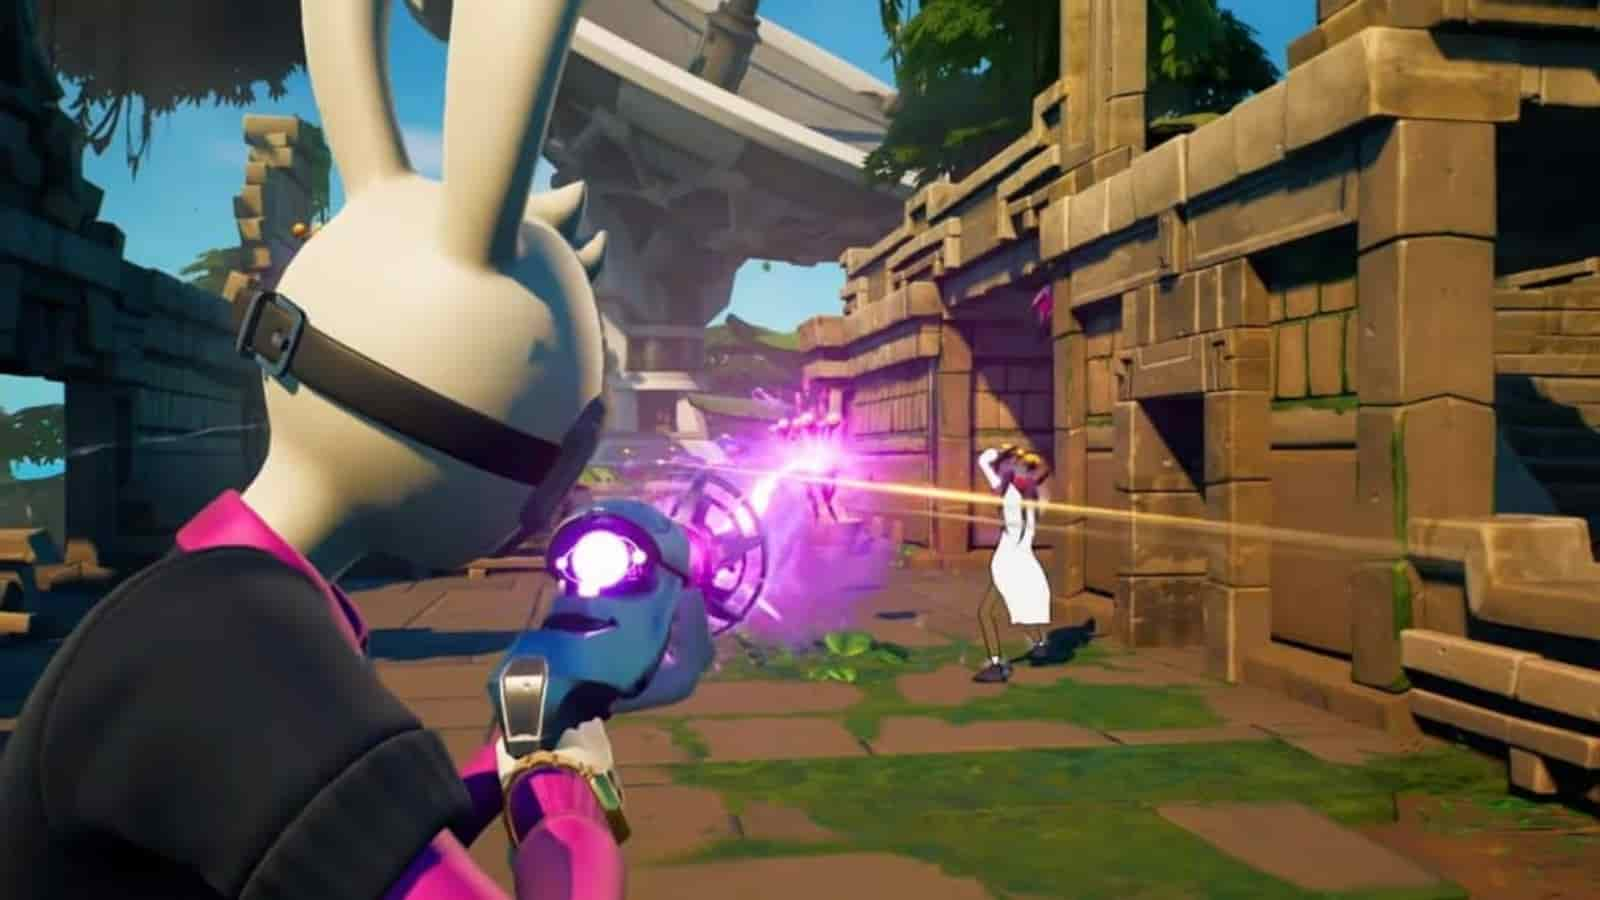 Fortnite Alien Parasites: Locations, How to Remove